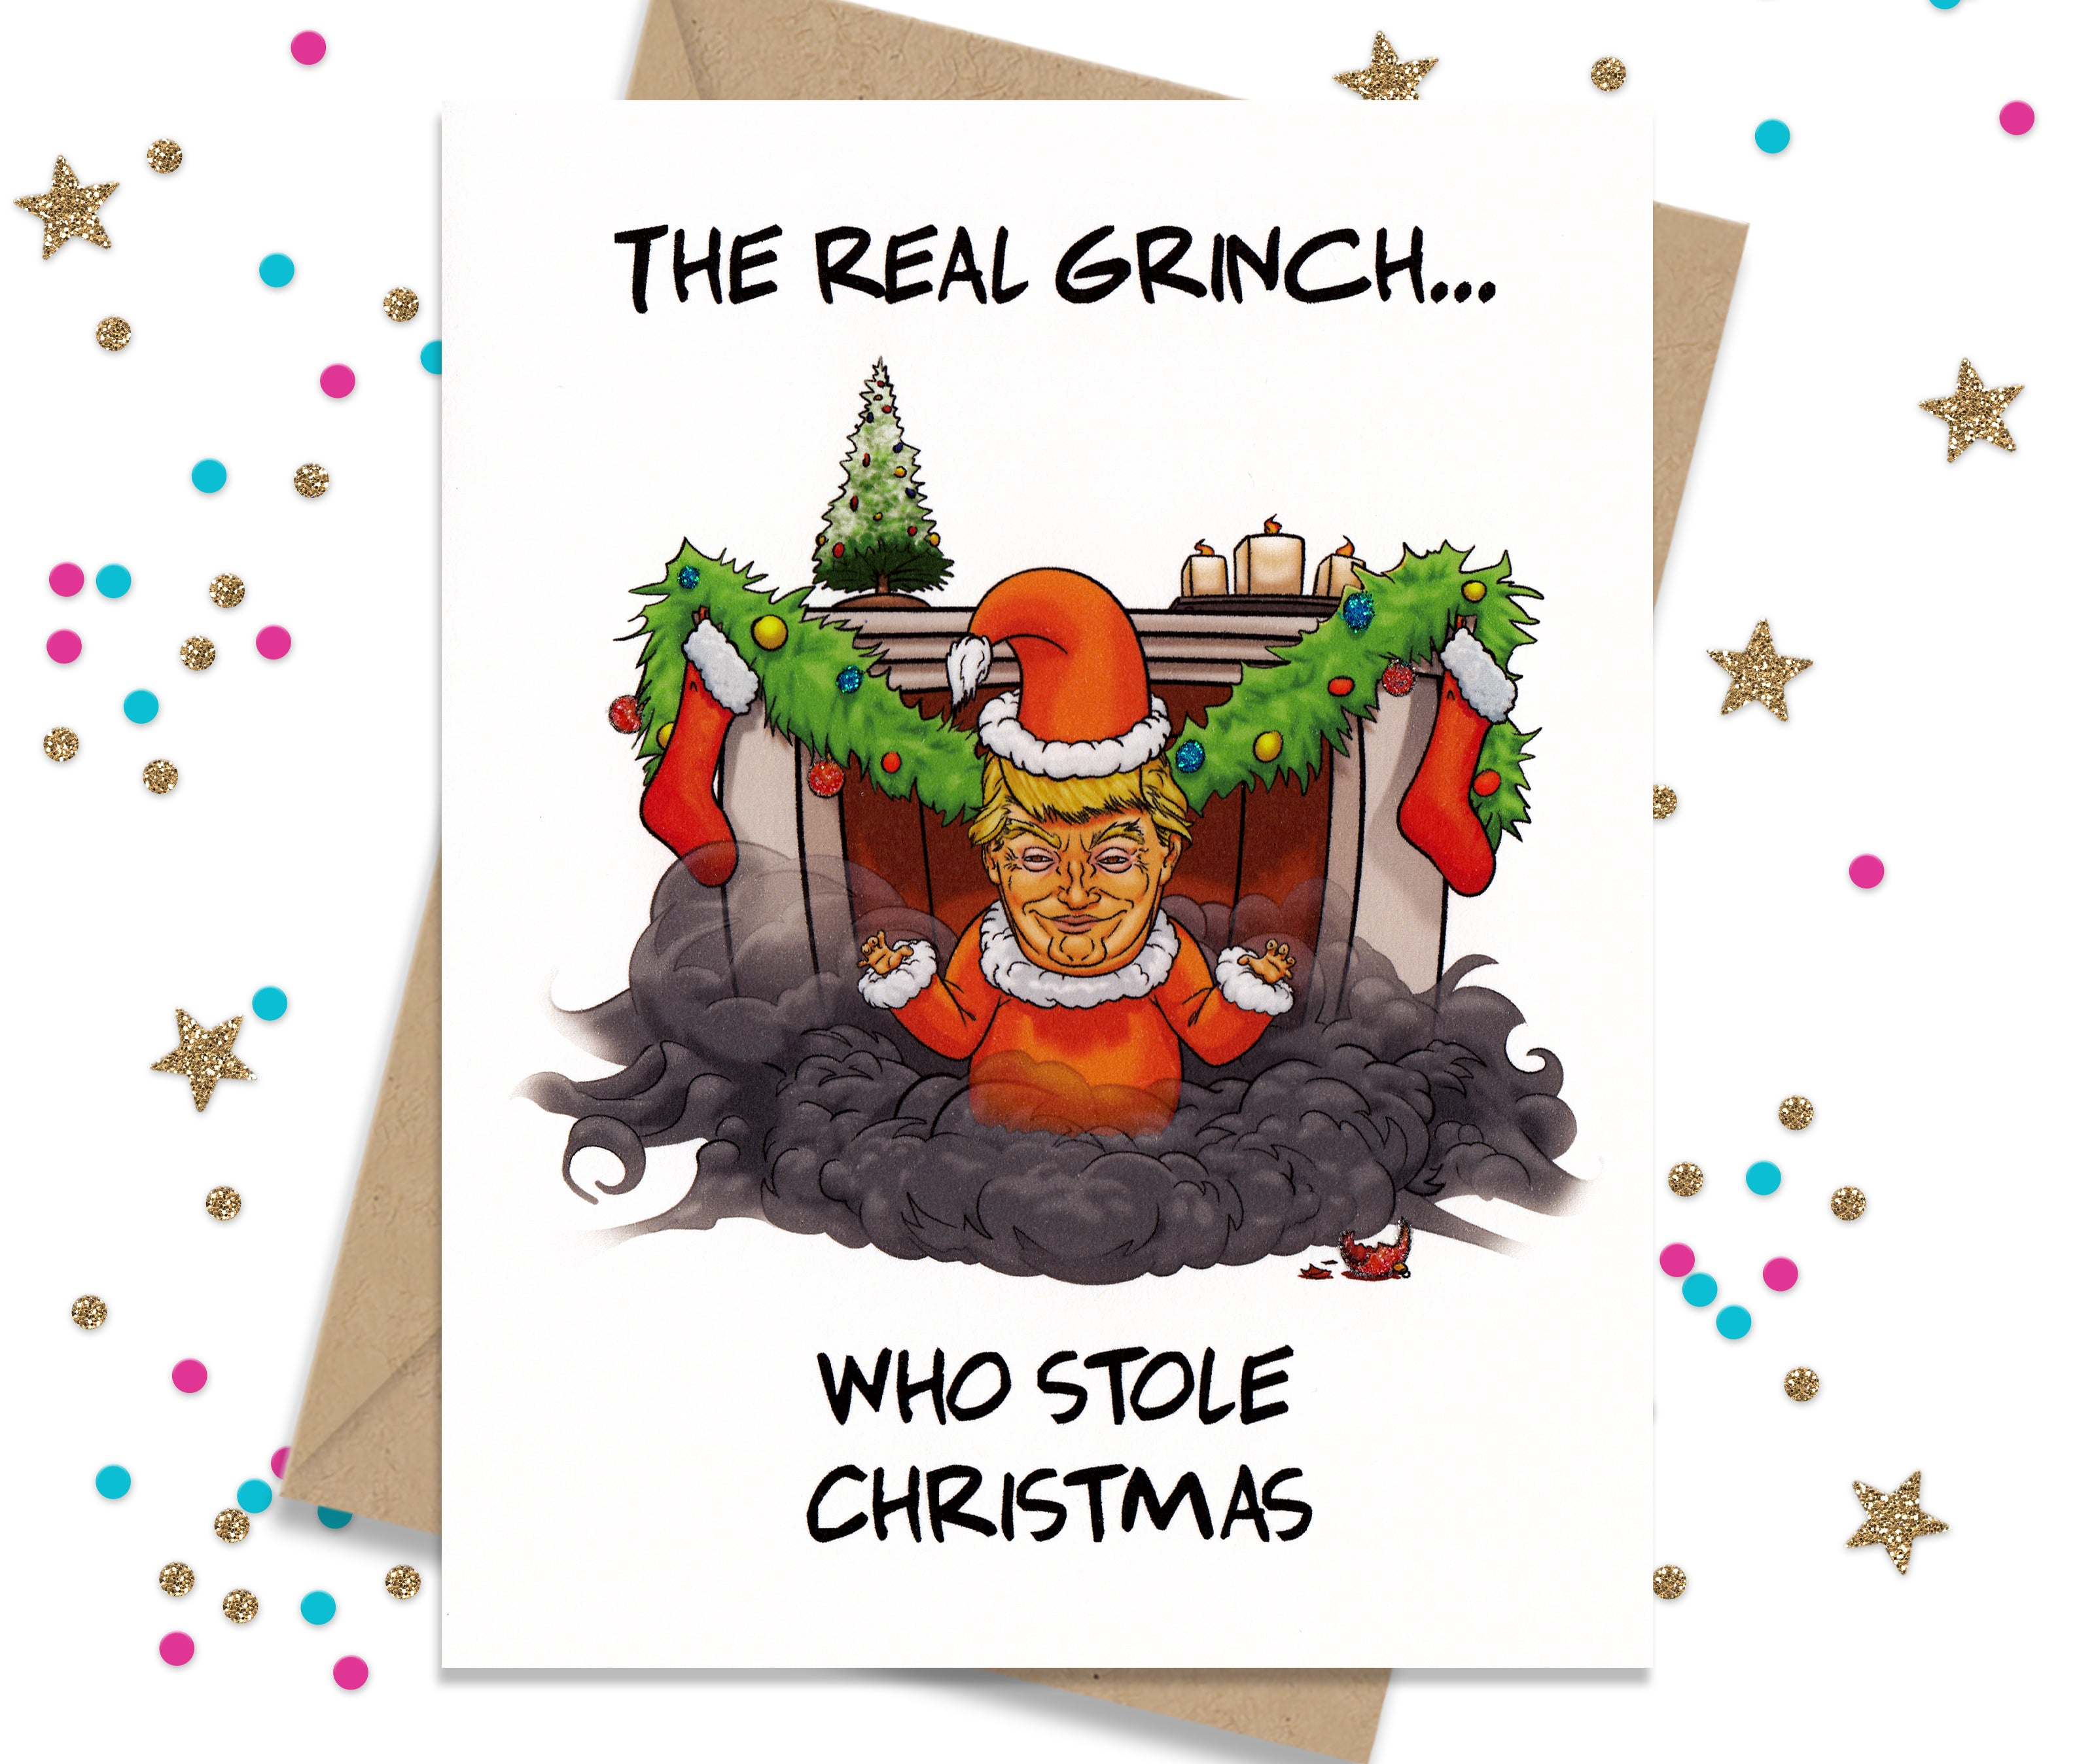 The Real Grinch who Stole Christmas (Trump card) - Funny Christmas Cards